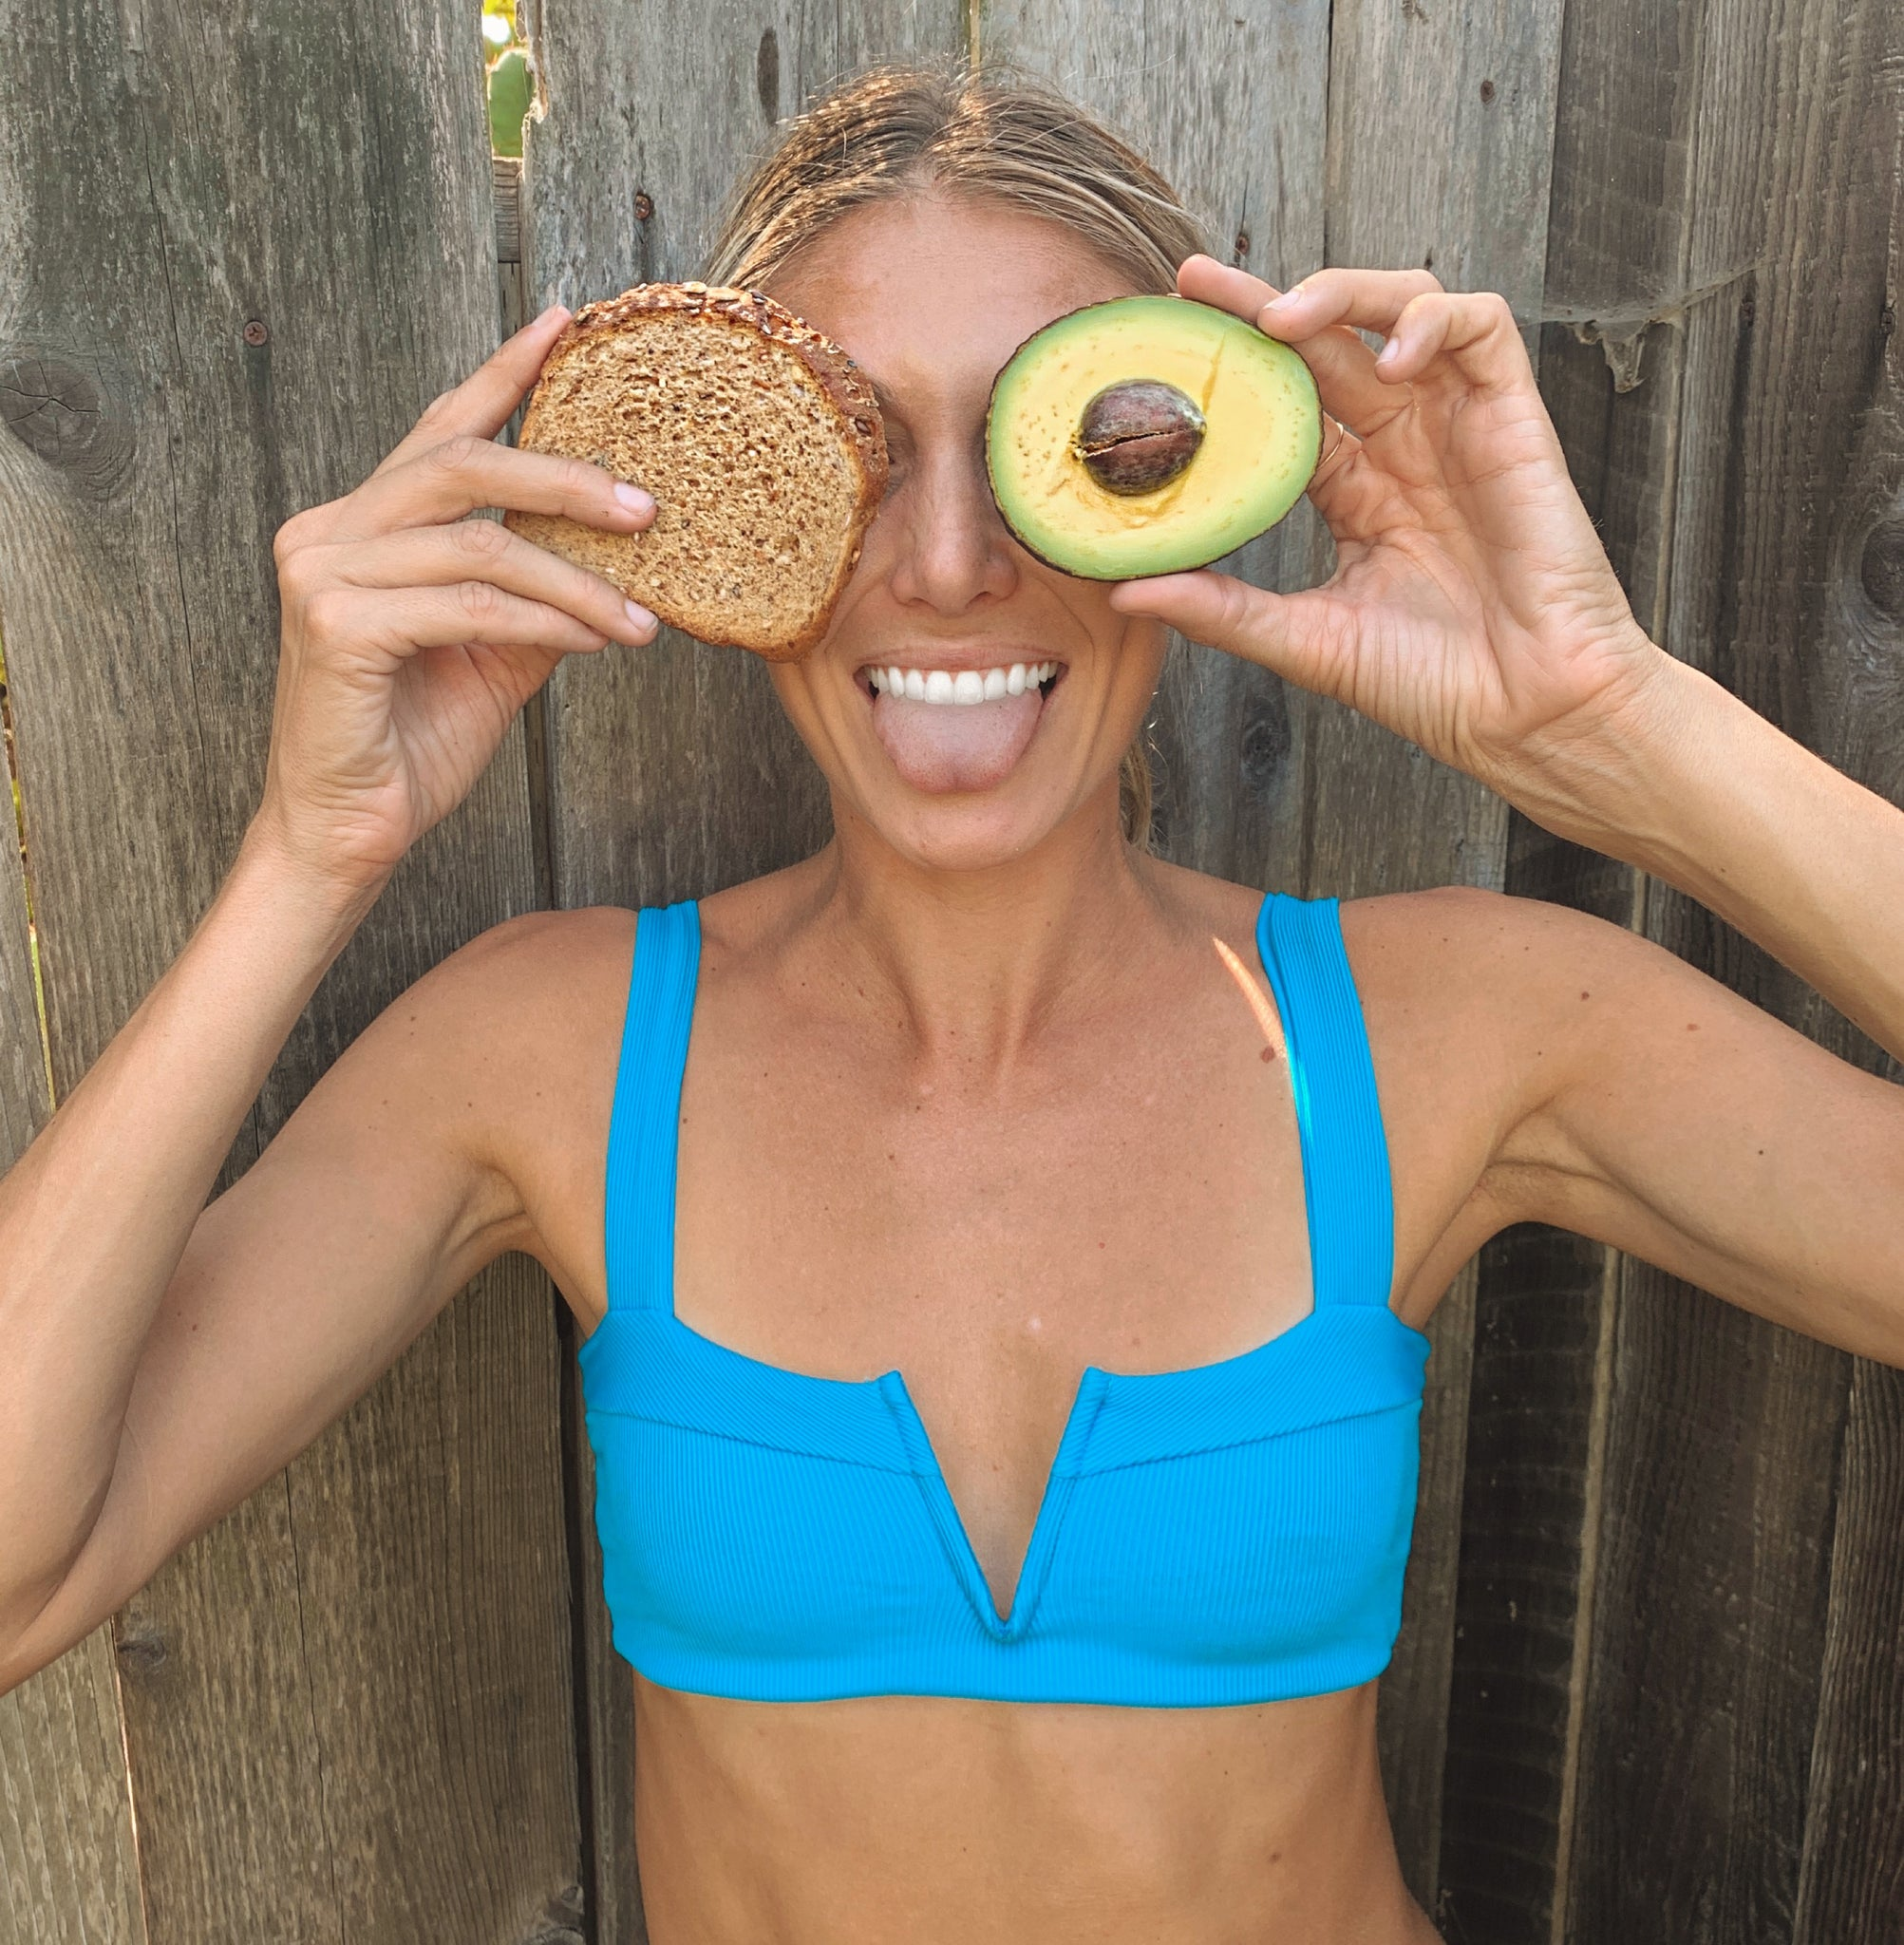 5 Simple Foods I Try And Eat EVERY DAY As An Athlete + WHY!